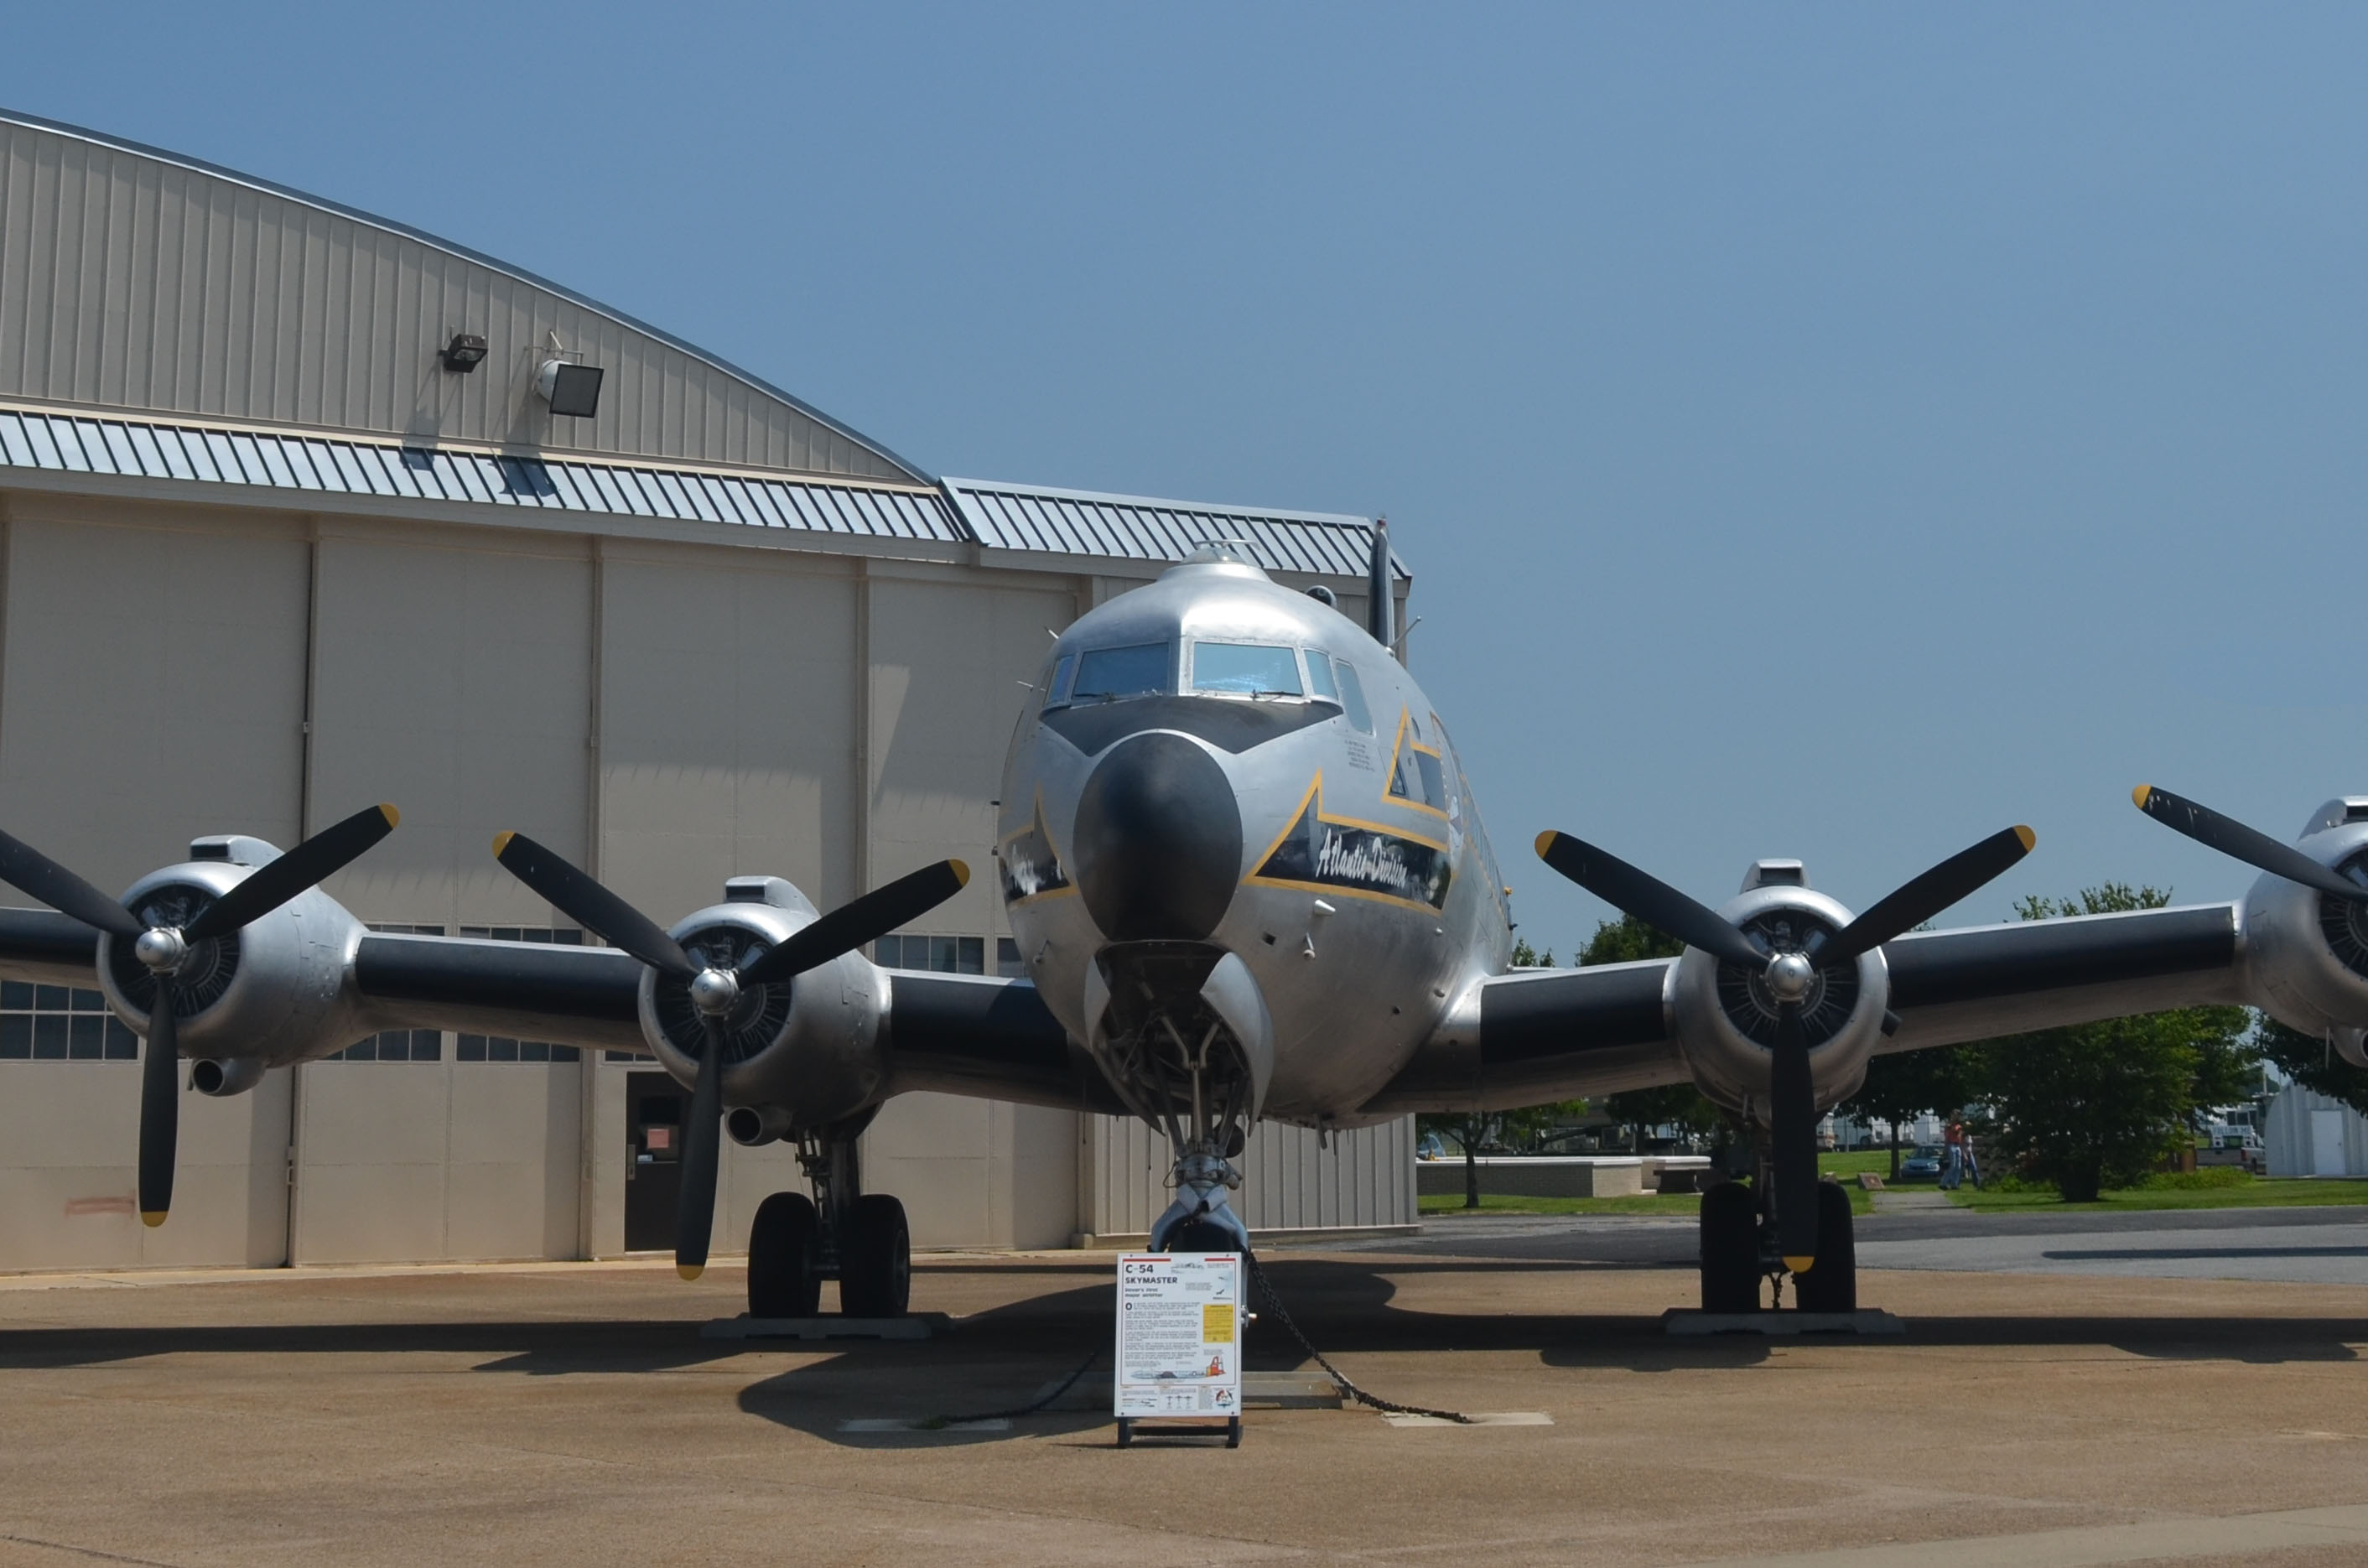 C-54M Skymaster - Air Mobility Command Museum